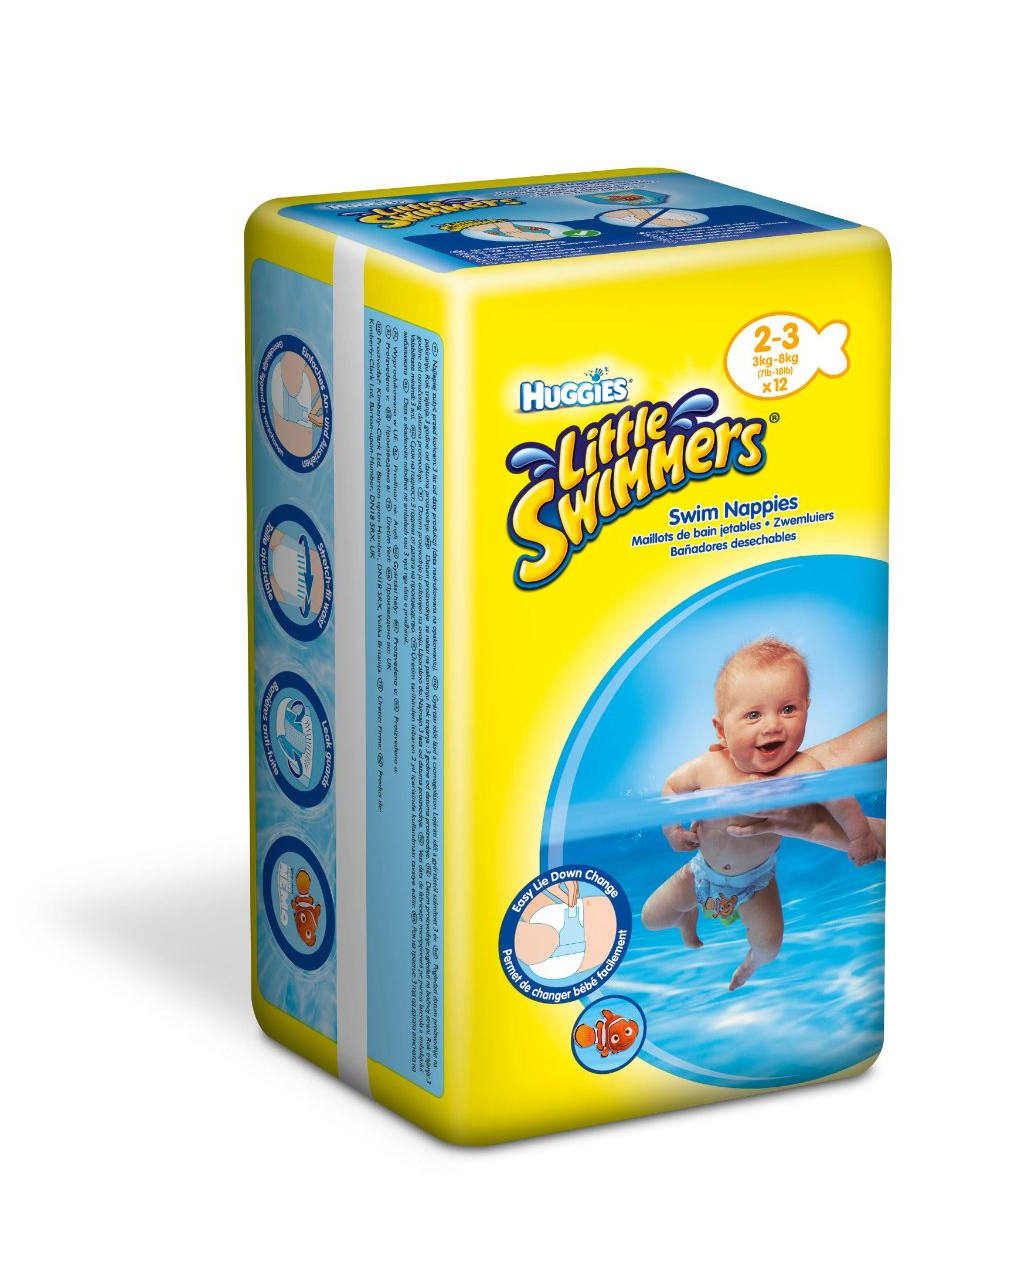 Little swimmers small (3-8 kg) - Huggies